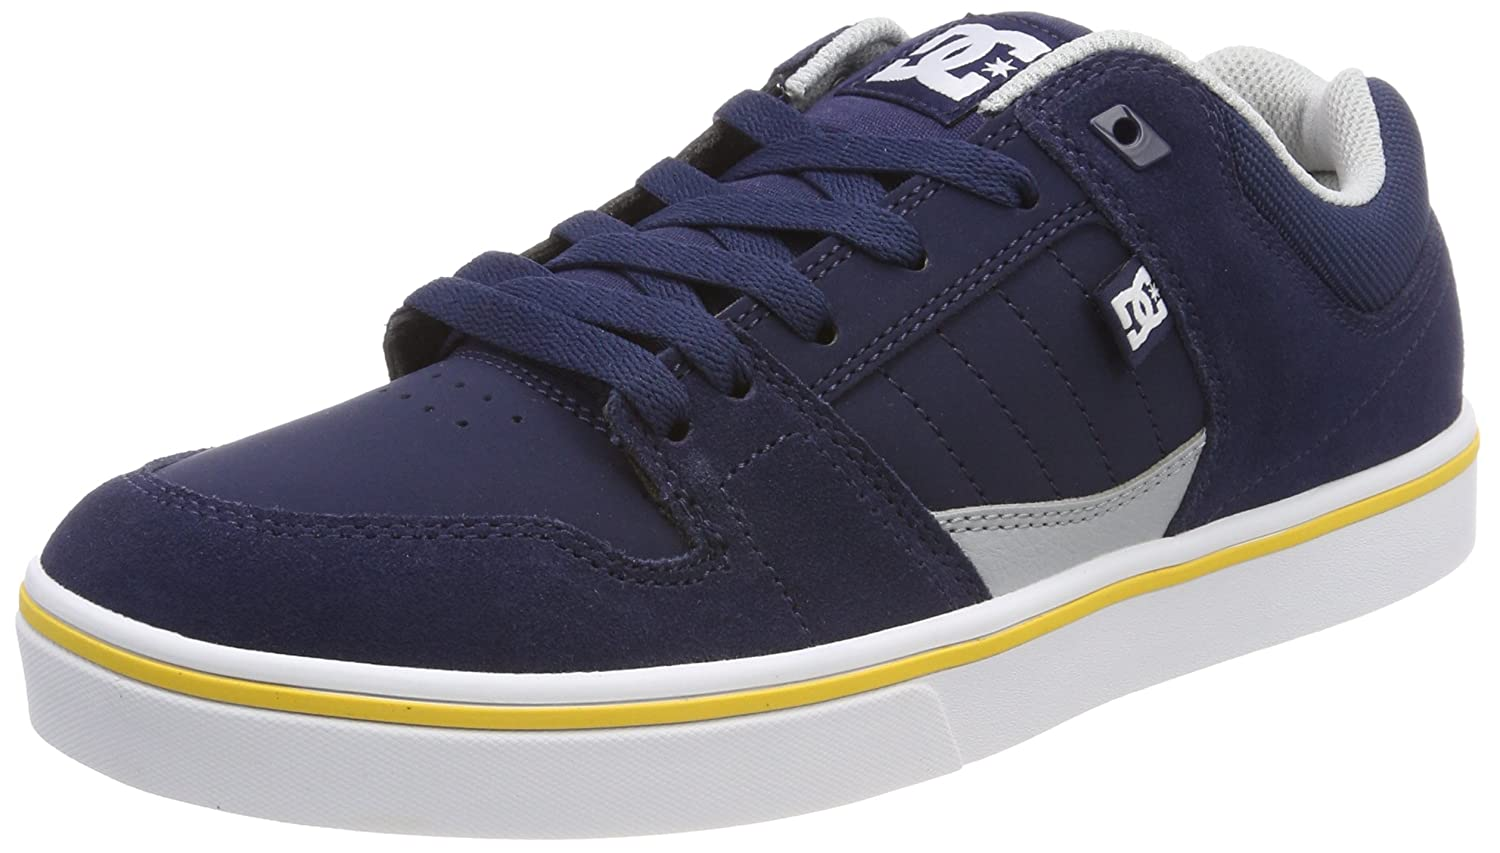 bluee (Navy Yellow Ny0) DC shoes Men's Course 2 Trainers